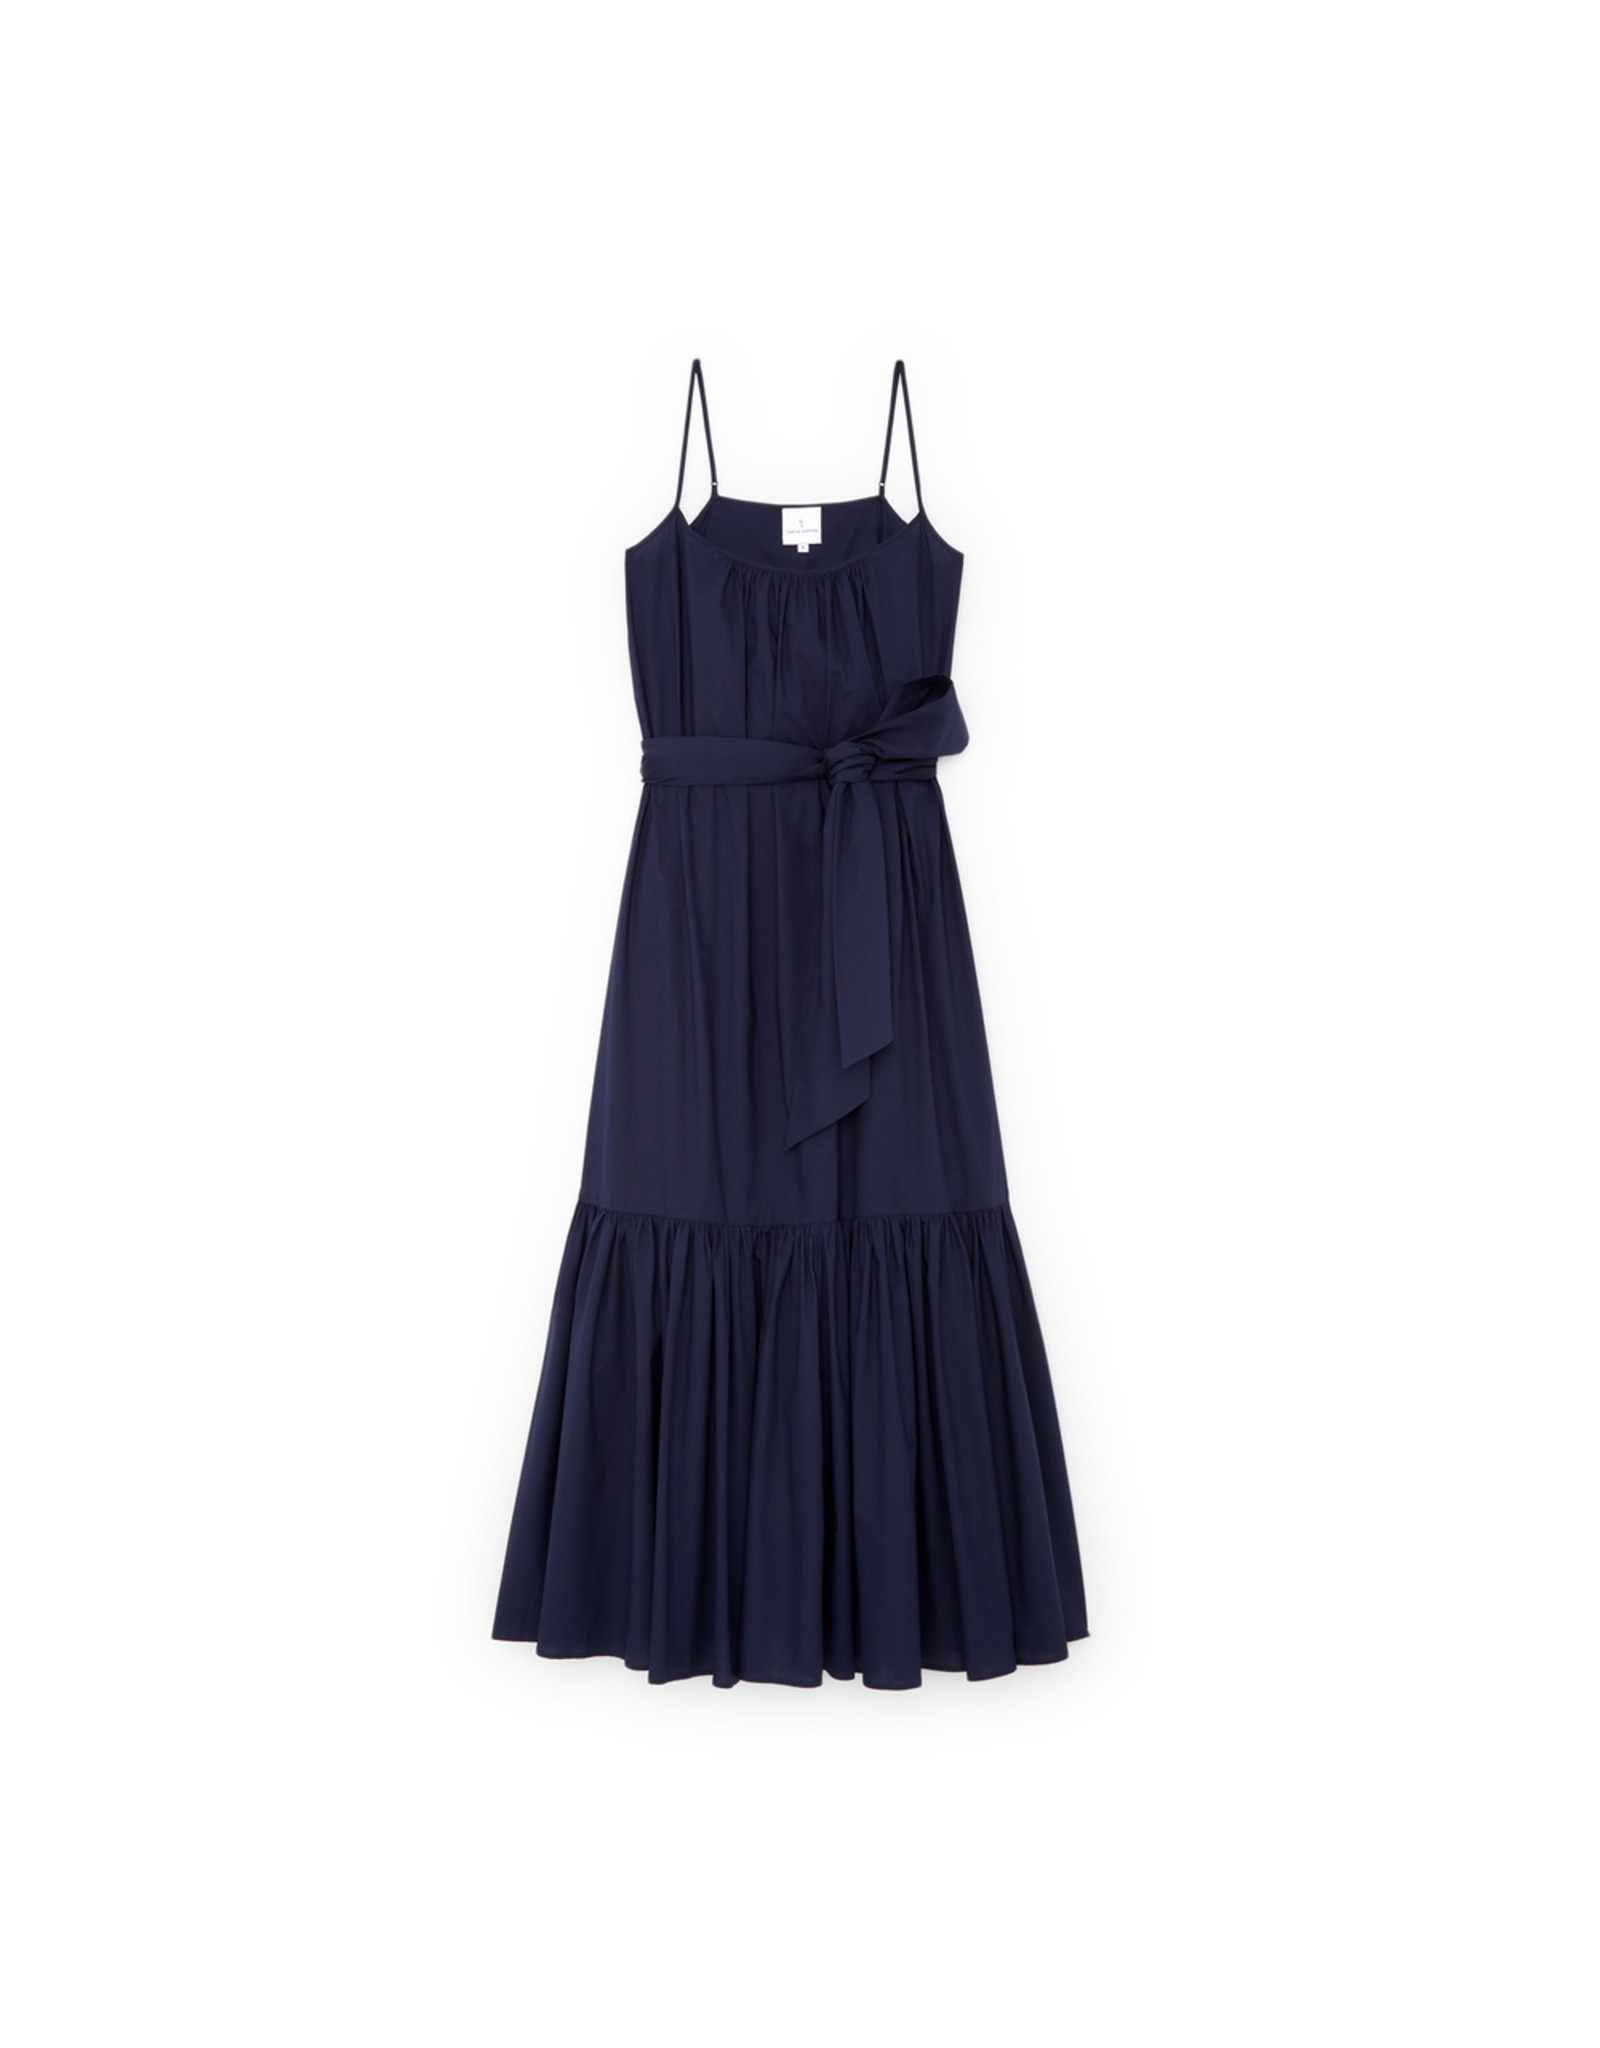 G. Label G. Label Capri Skinny Strap Dress (Color: Navy, Size: XS)